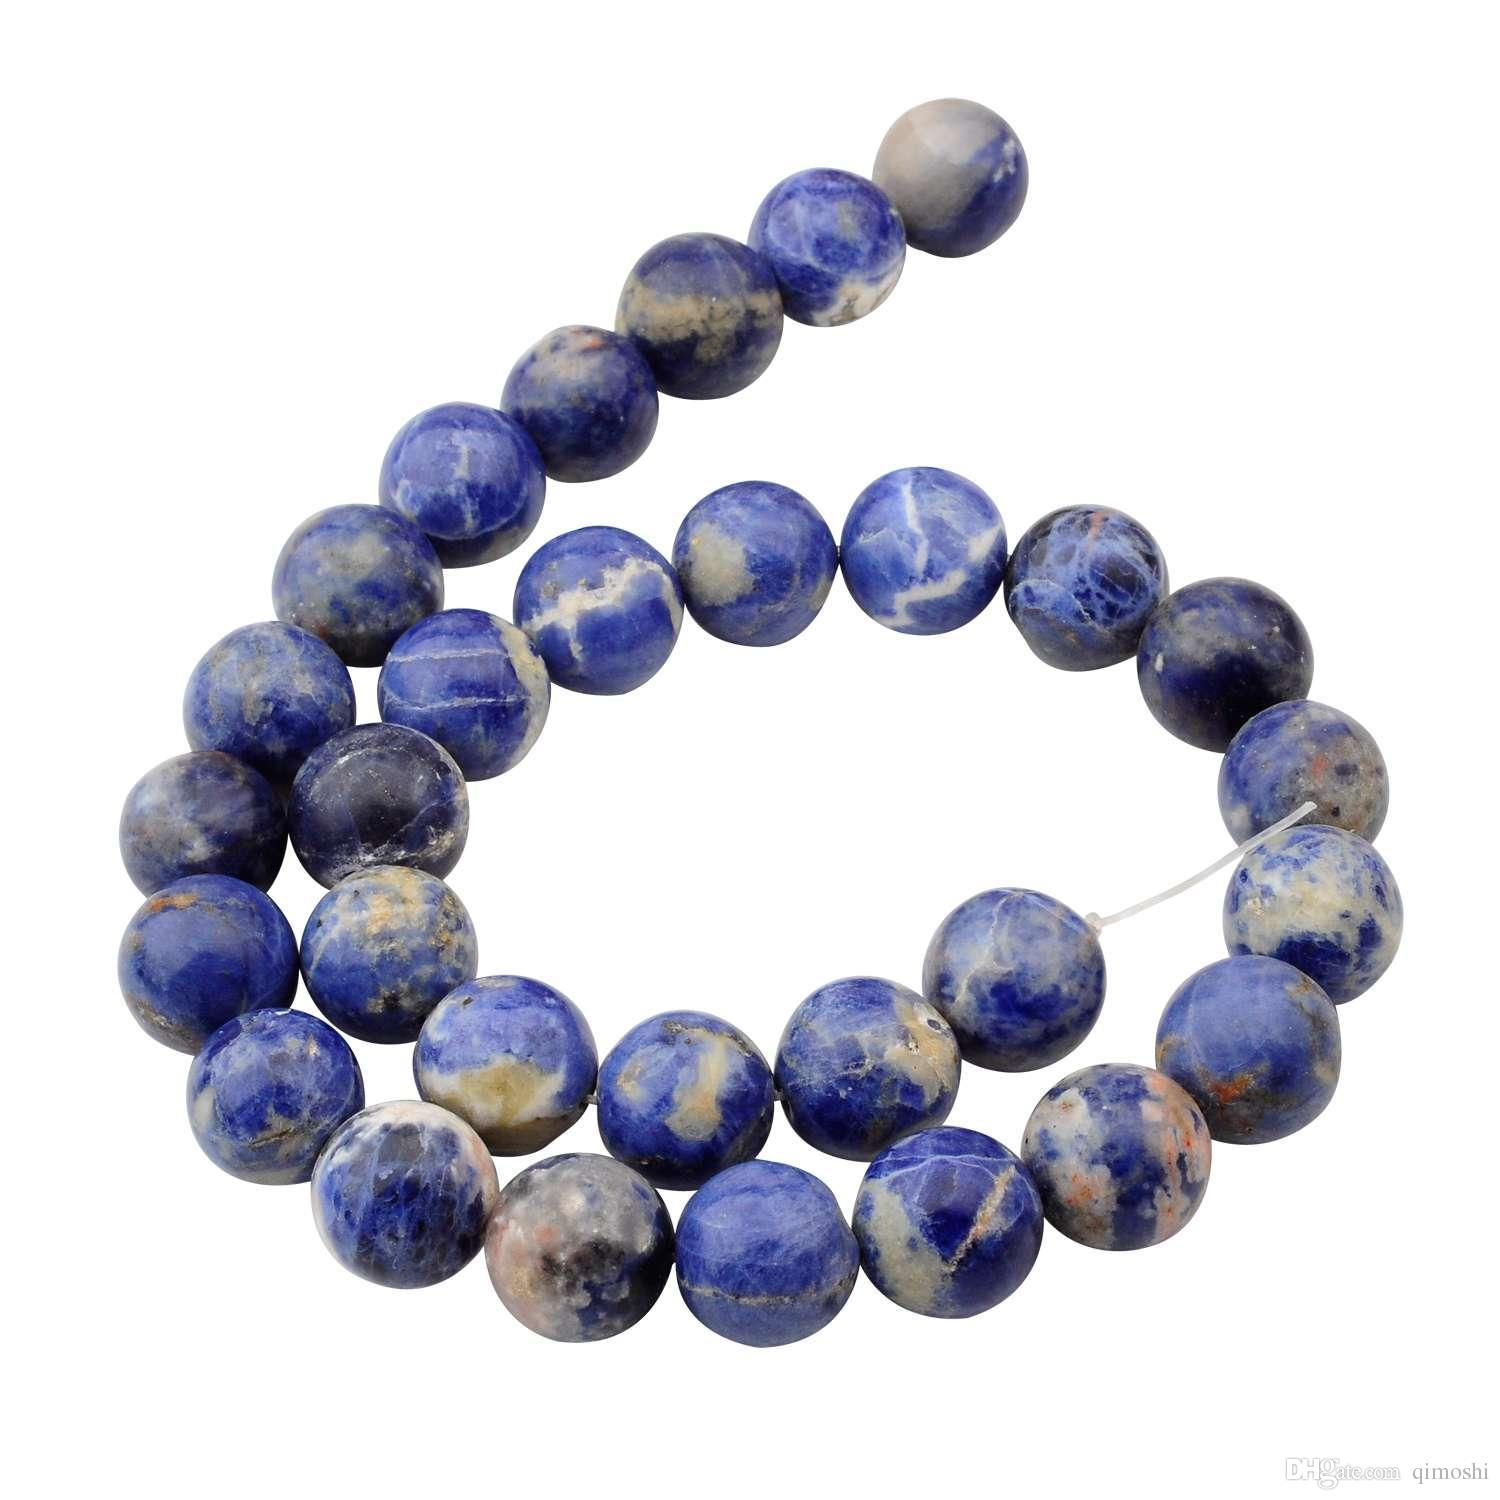 elegant beads faux for vase pearl bulk centerpiece products w filler wholesale decor sale in buy